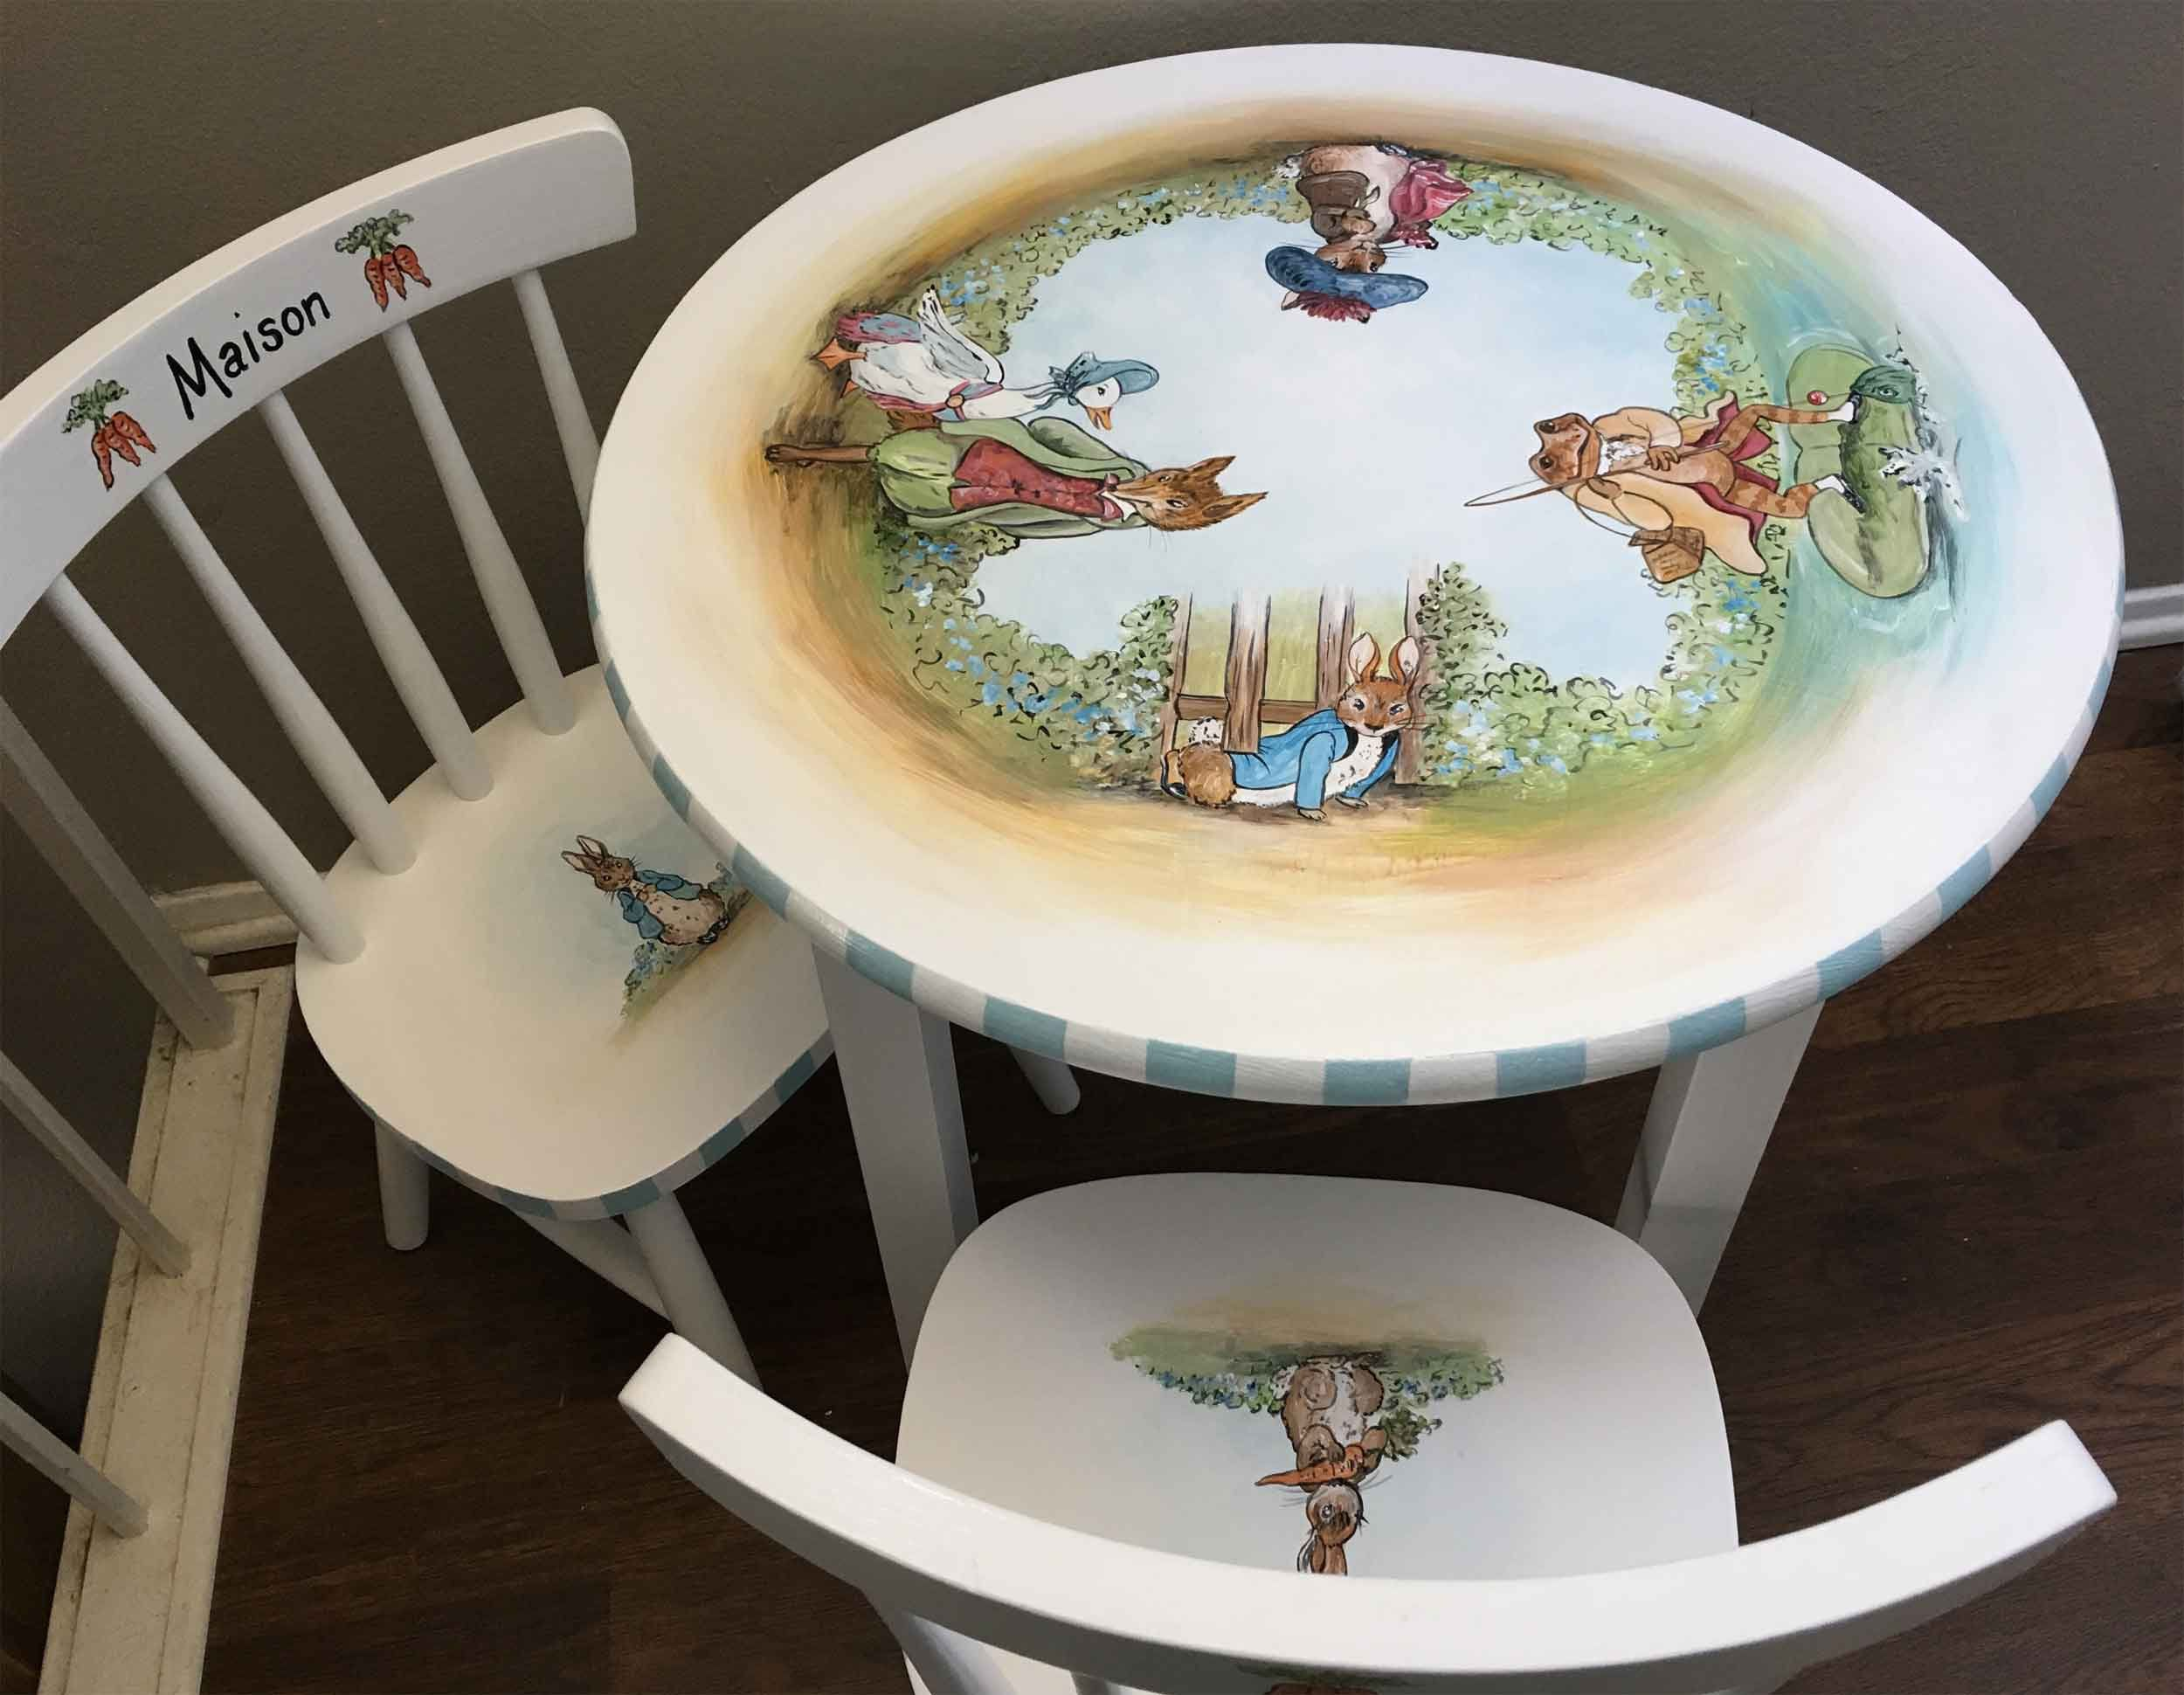 Hand Painted Kids Table And Chair Set Children S Table And Chairs Kids Painted Furniture Peter Rabbit Table Set Kids Table And Chairs Paint Kids Table Painting Kids Furniture Child's table and chair set